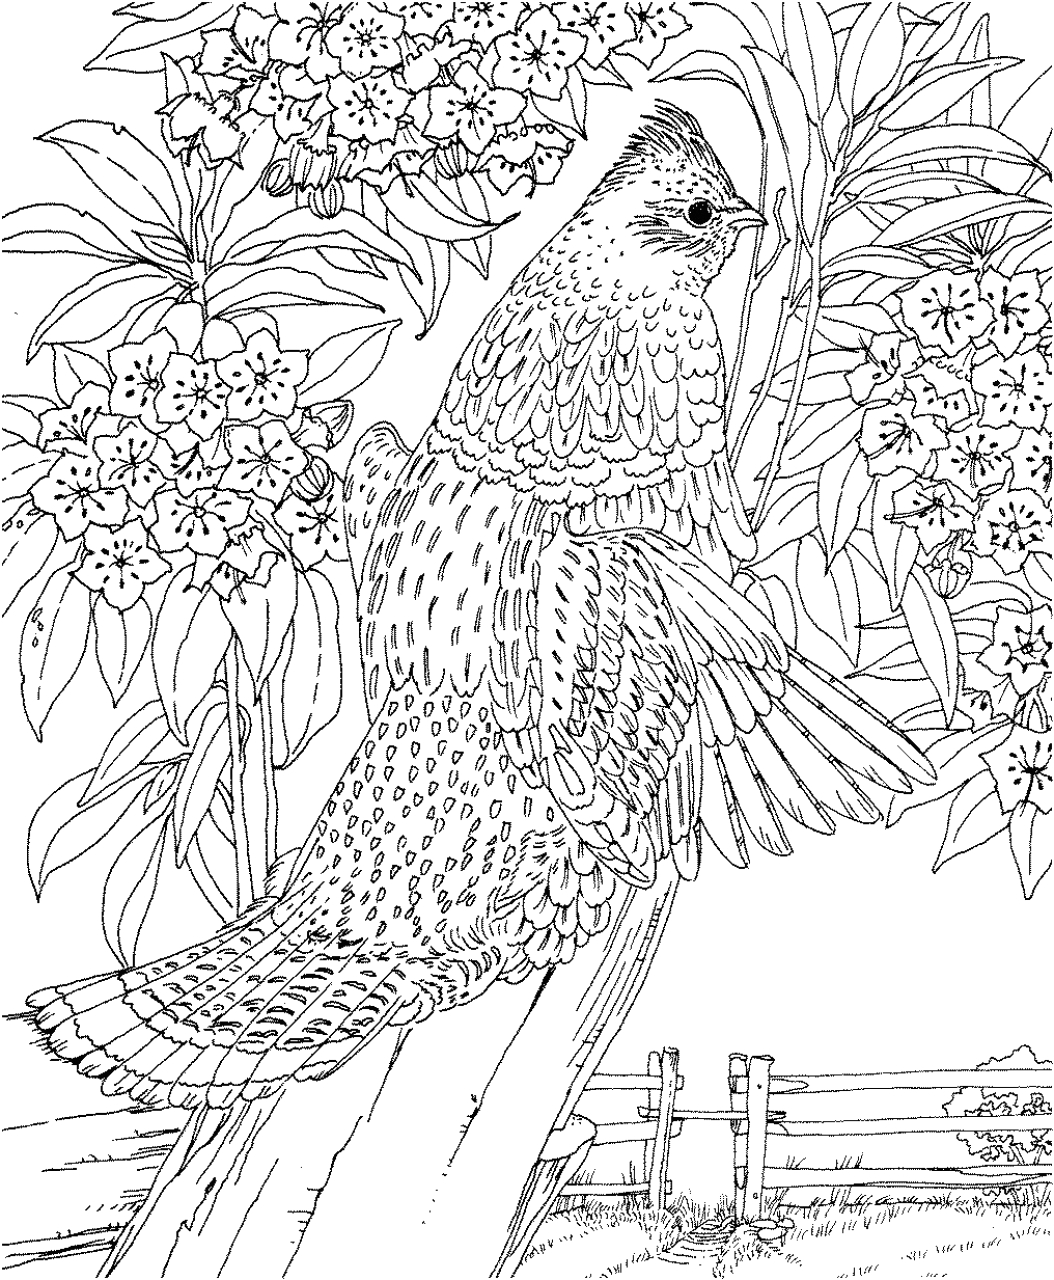 Difficult Coloring Pages for Adults to Print Get This Difficult Adult Coloring Pages to Print Out